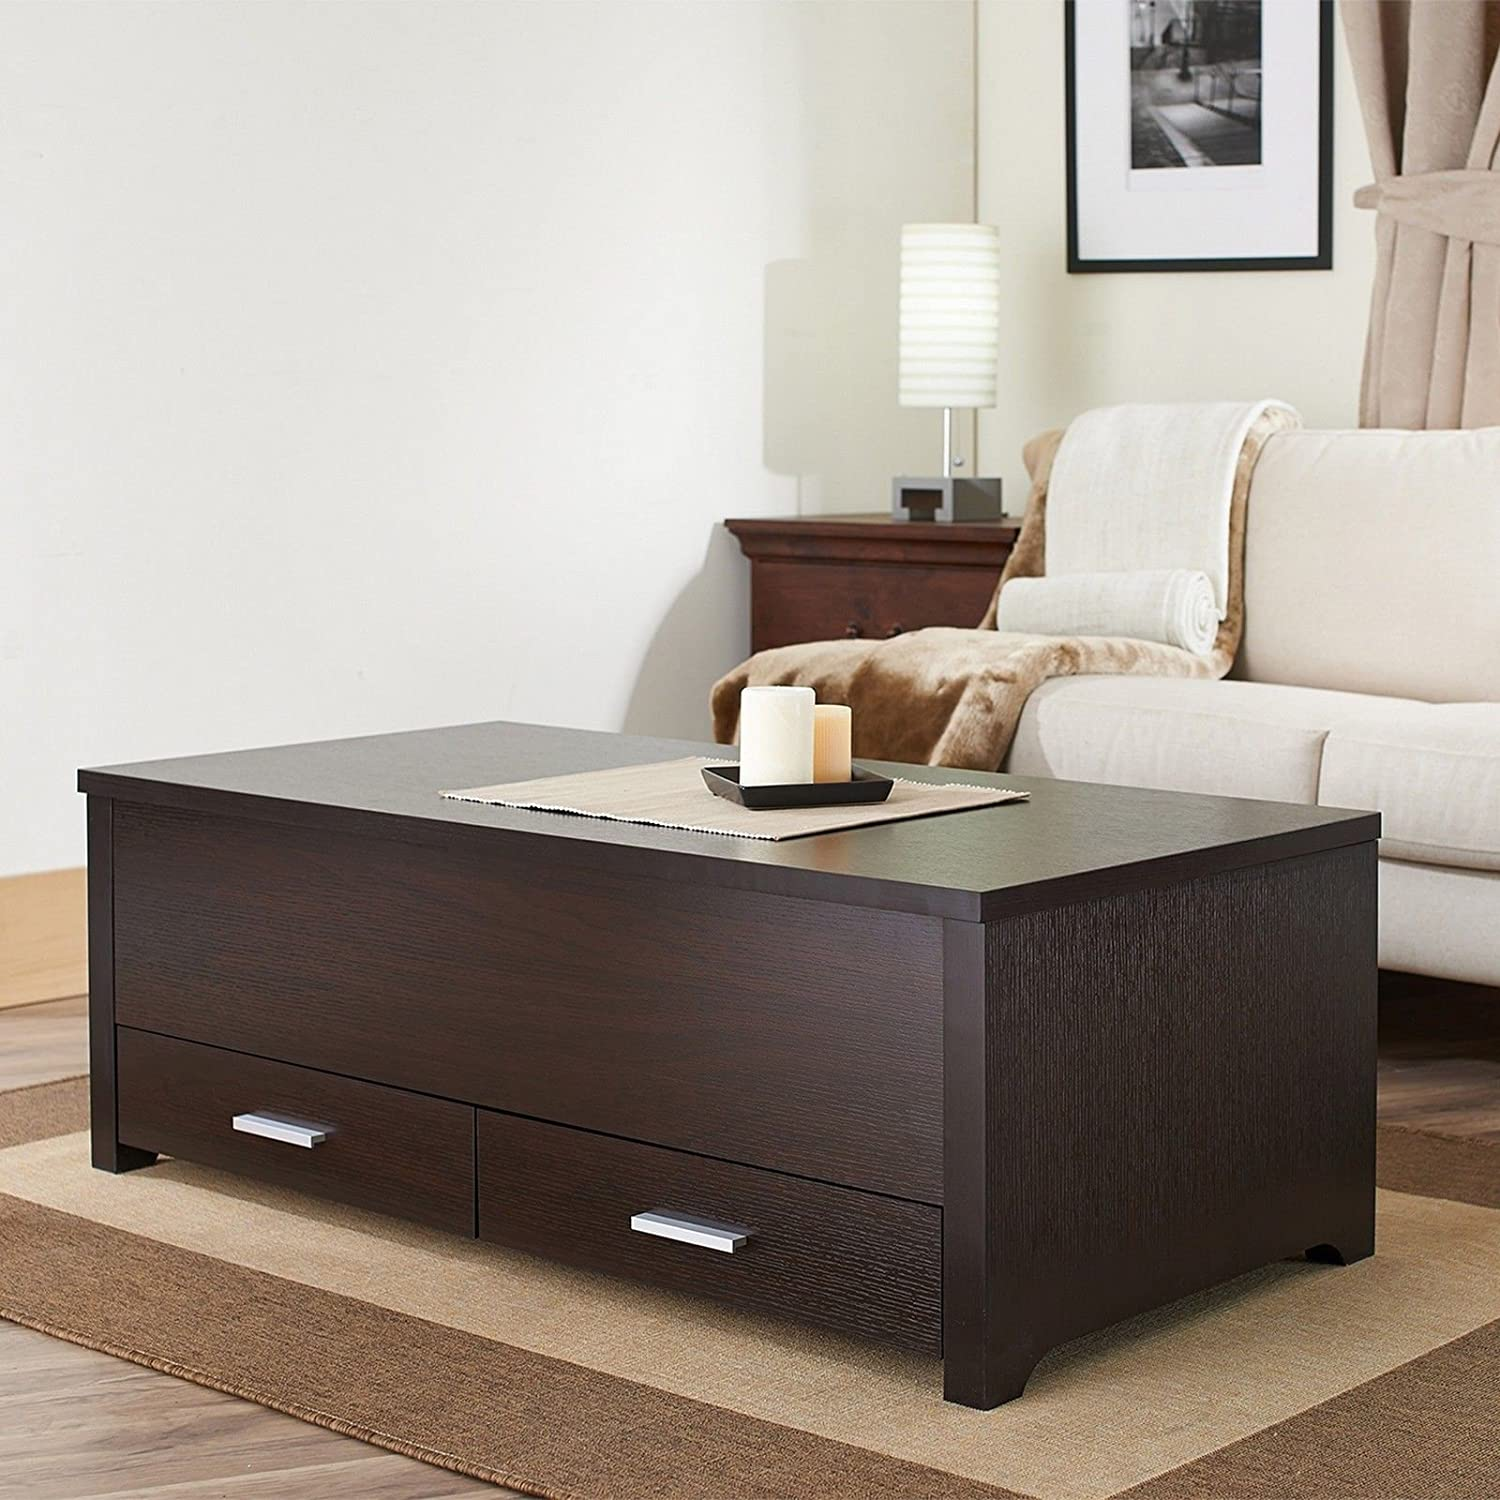 Amazon Espresso Finish Wood Trunk Coffee End Table with